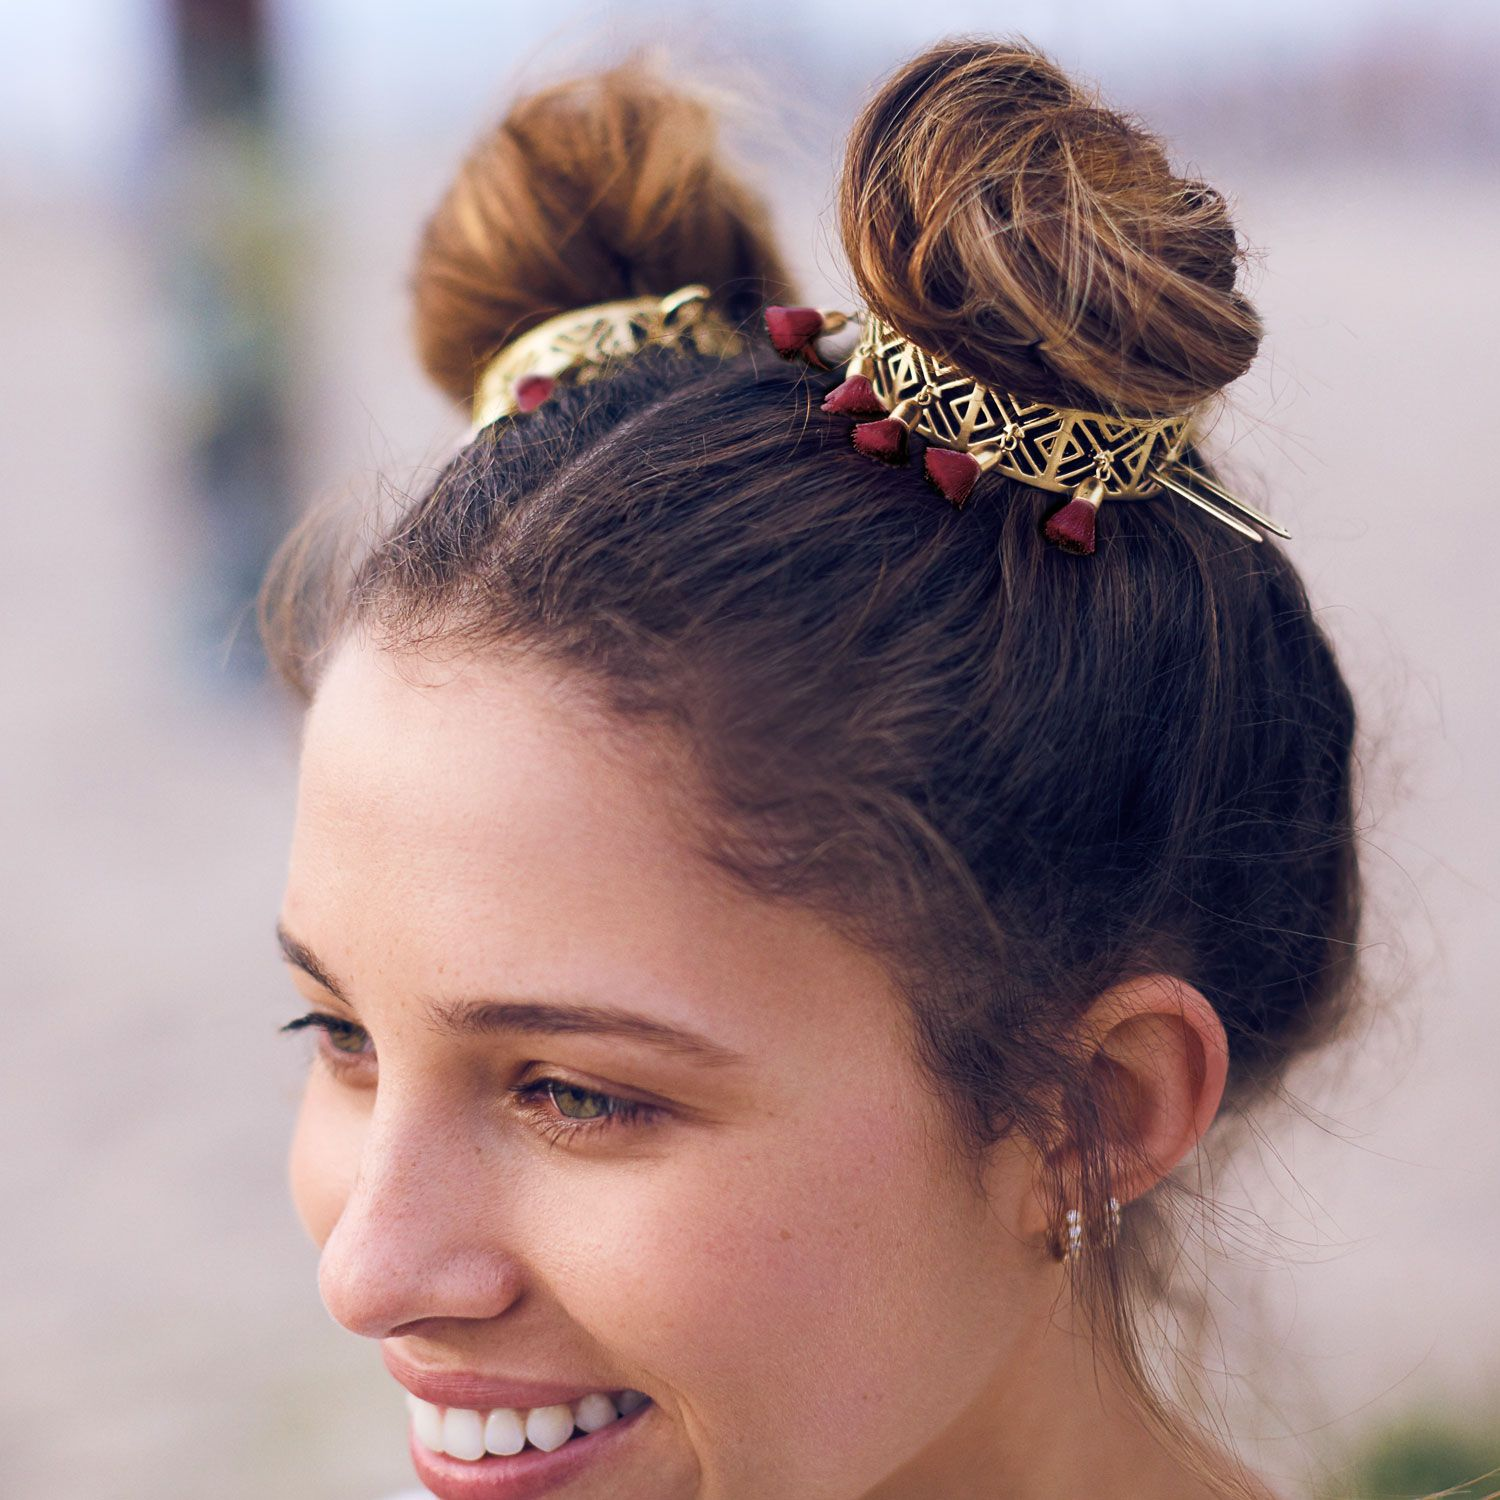 Upgrade Your Out Of This World Space Buns With Our Burgundy Tassel Bun Cuff Boho Hairstyles Hair Accessories Boho Bun Hairstyles